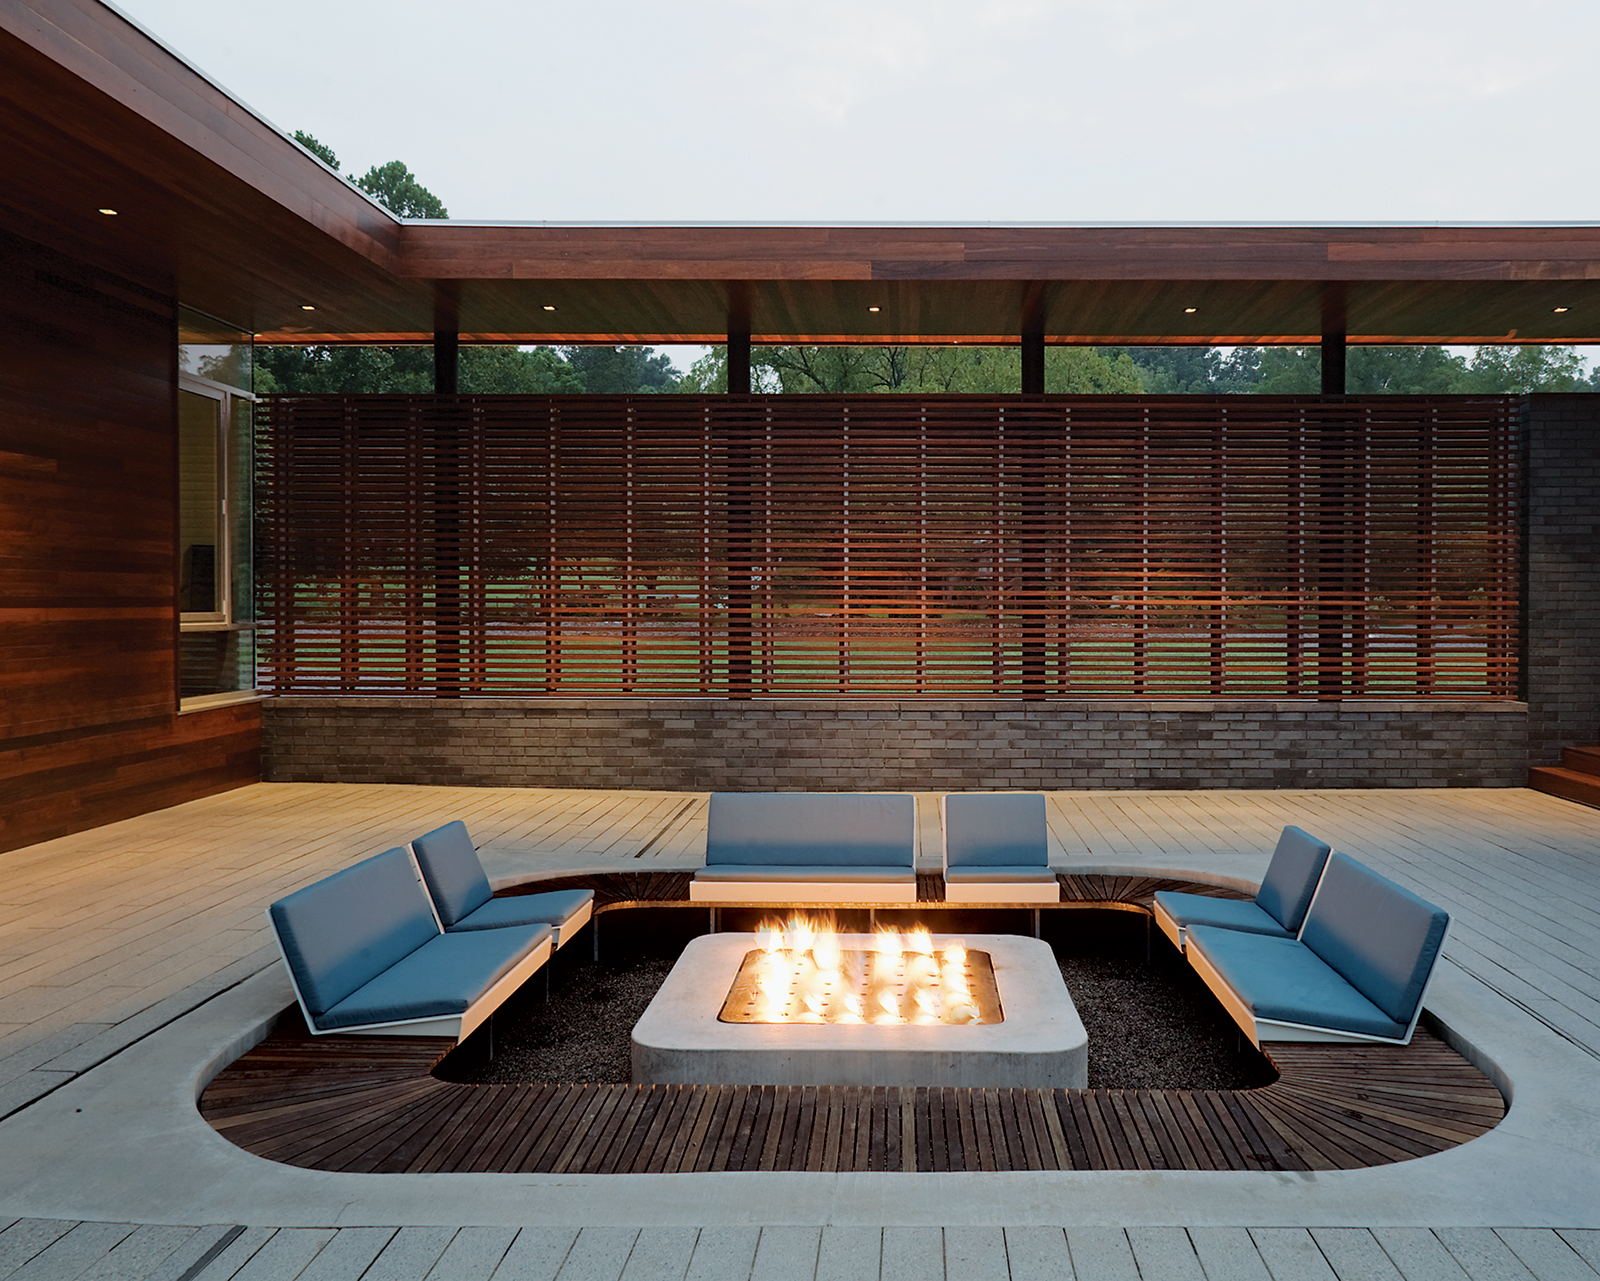 eye catching modern outdoor fireplaces turn the patio. Black Bedroom Furniture Sets. Home Design Ideas